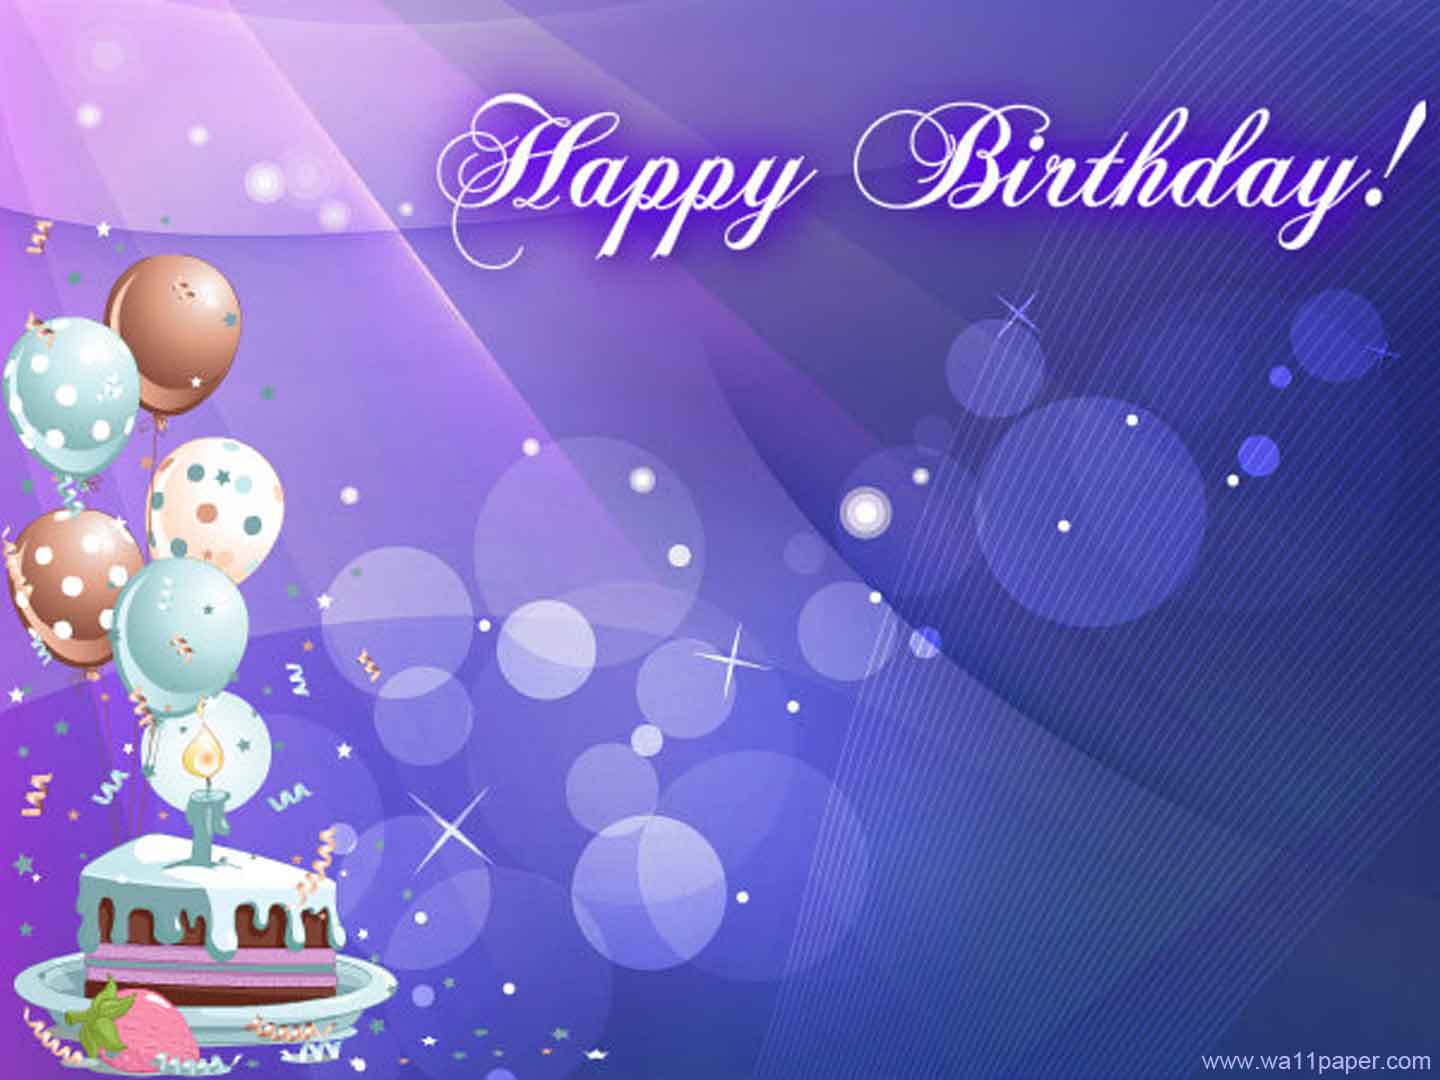 Birthday Wallpaper For Men